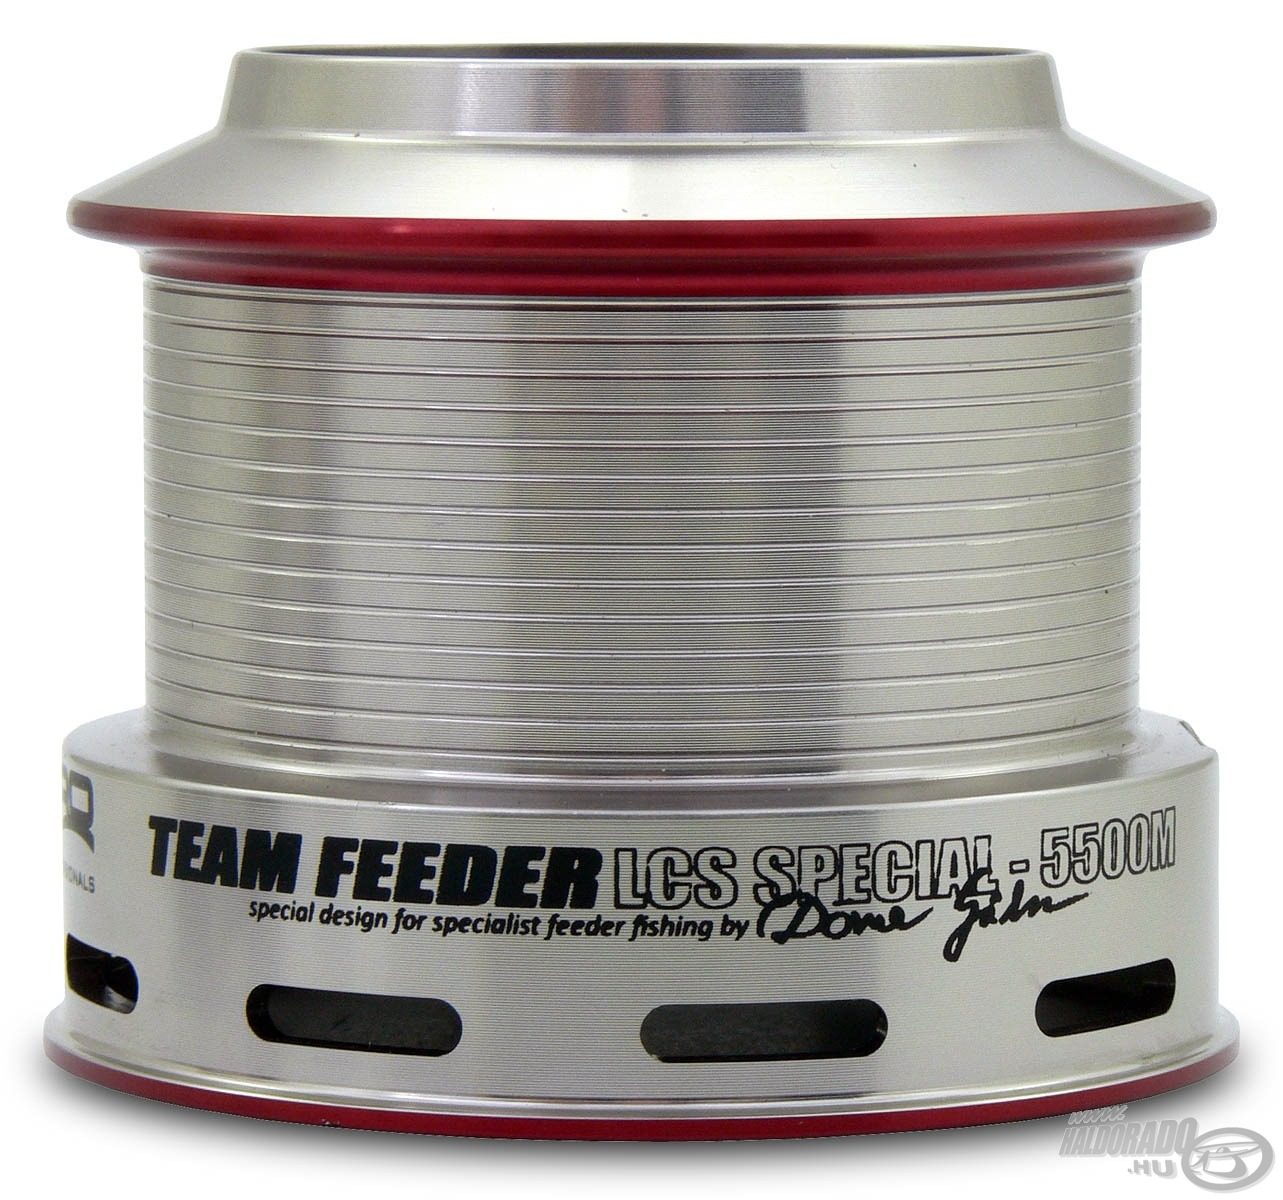 SPRO Team Feeder Special LCS 550M p�tdob 2990Ft